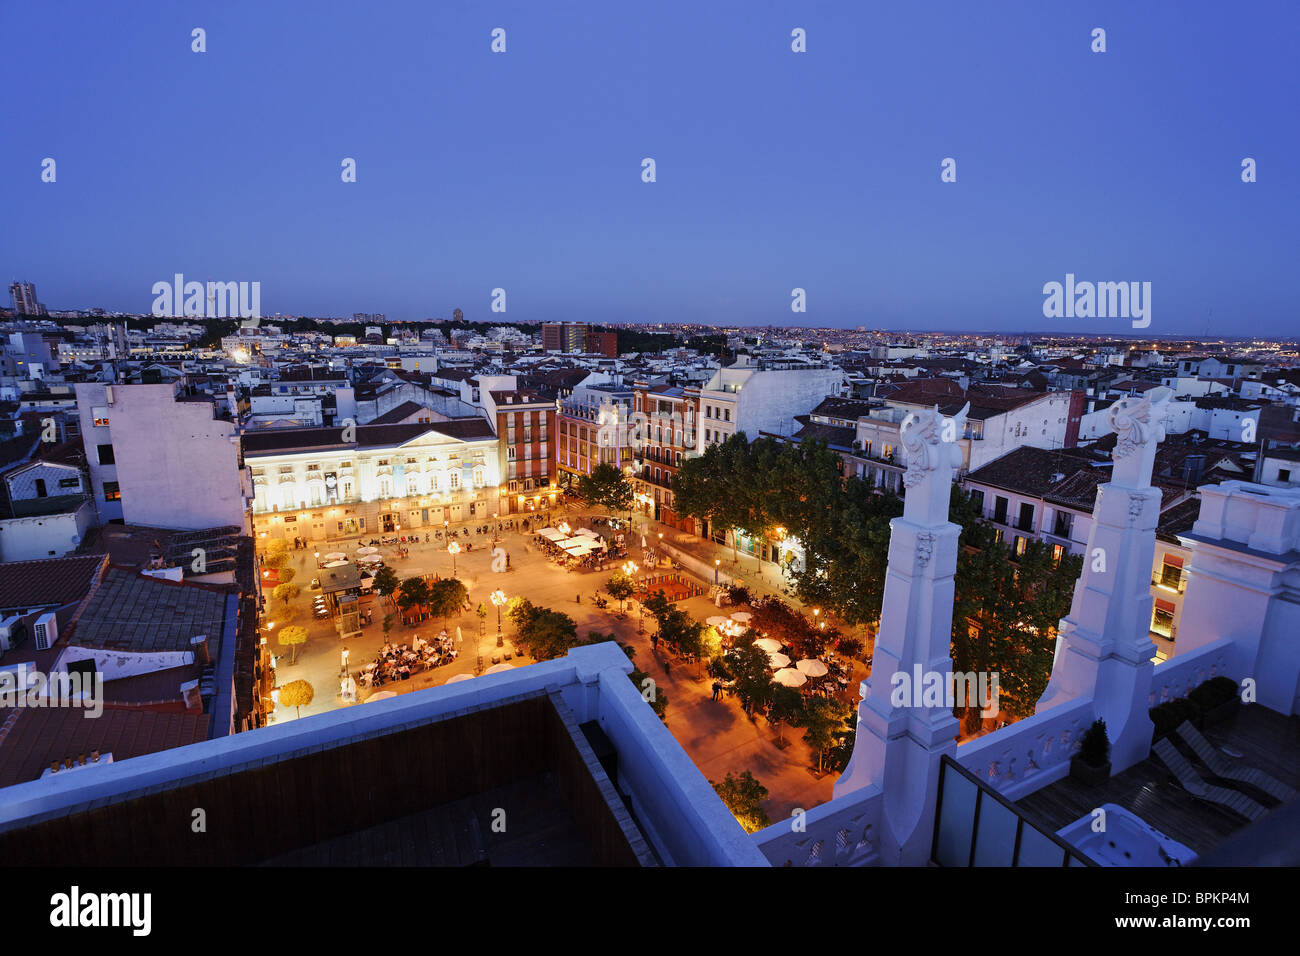 Pavement cafe in Plaza Santa Ana, Teatro Espanol in the background, Calle de Huertas, Madrid, Spain - Stock Image